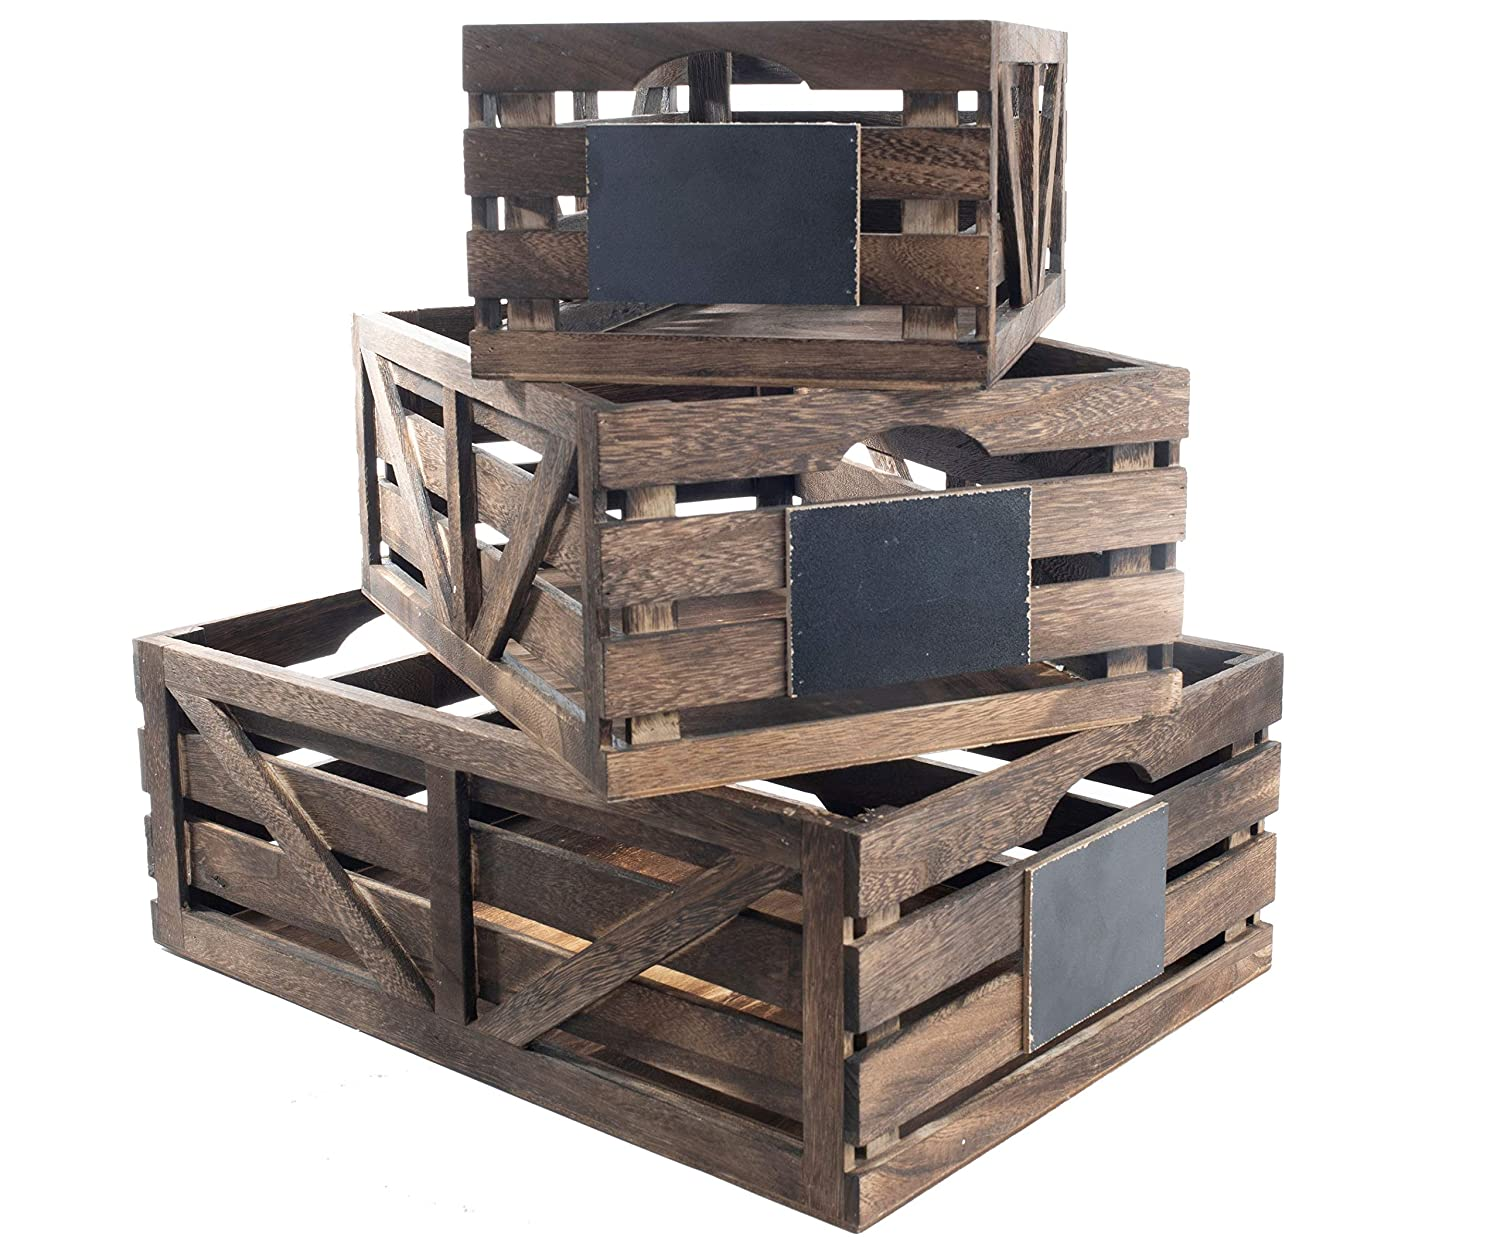 Buy Premium Home Wooden Crates: Home Dcor Wood crates for Display, Wooden Boxes for Crafts, Decorative Wooden Crate, Wood Box Storage Crate, Wooden Basket centerpieces for Home, Rustic Bathroom dcor Online at